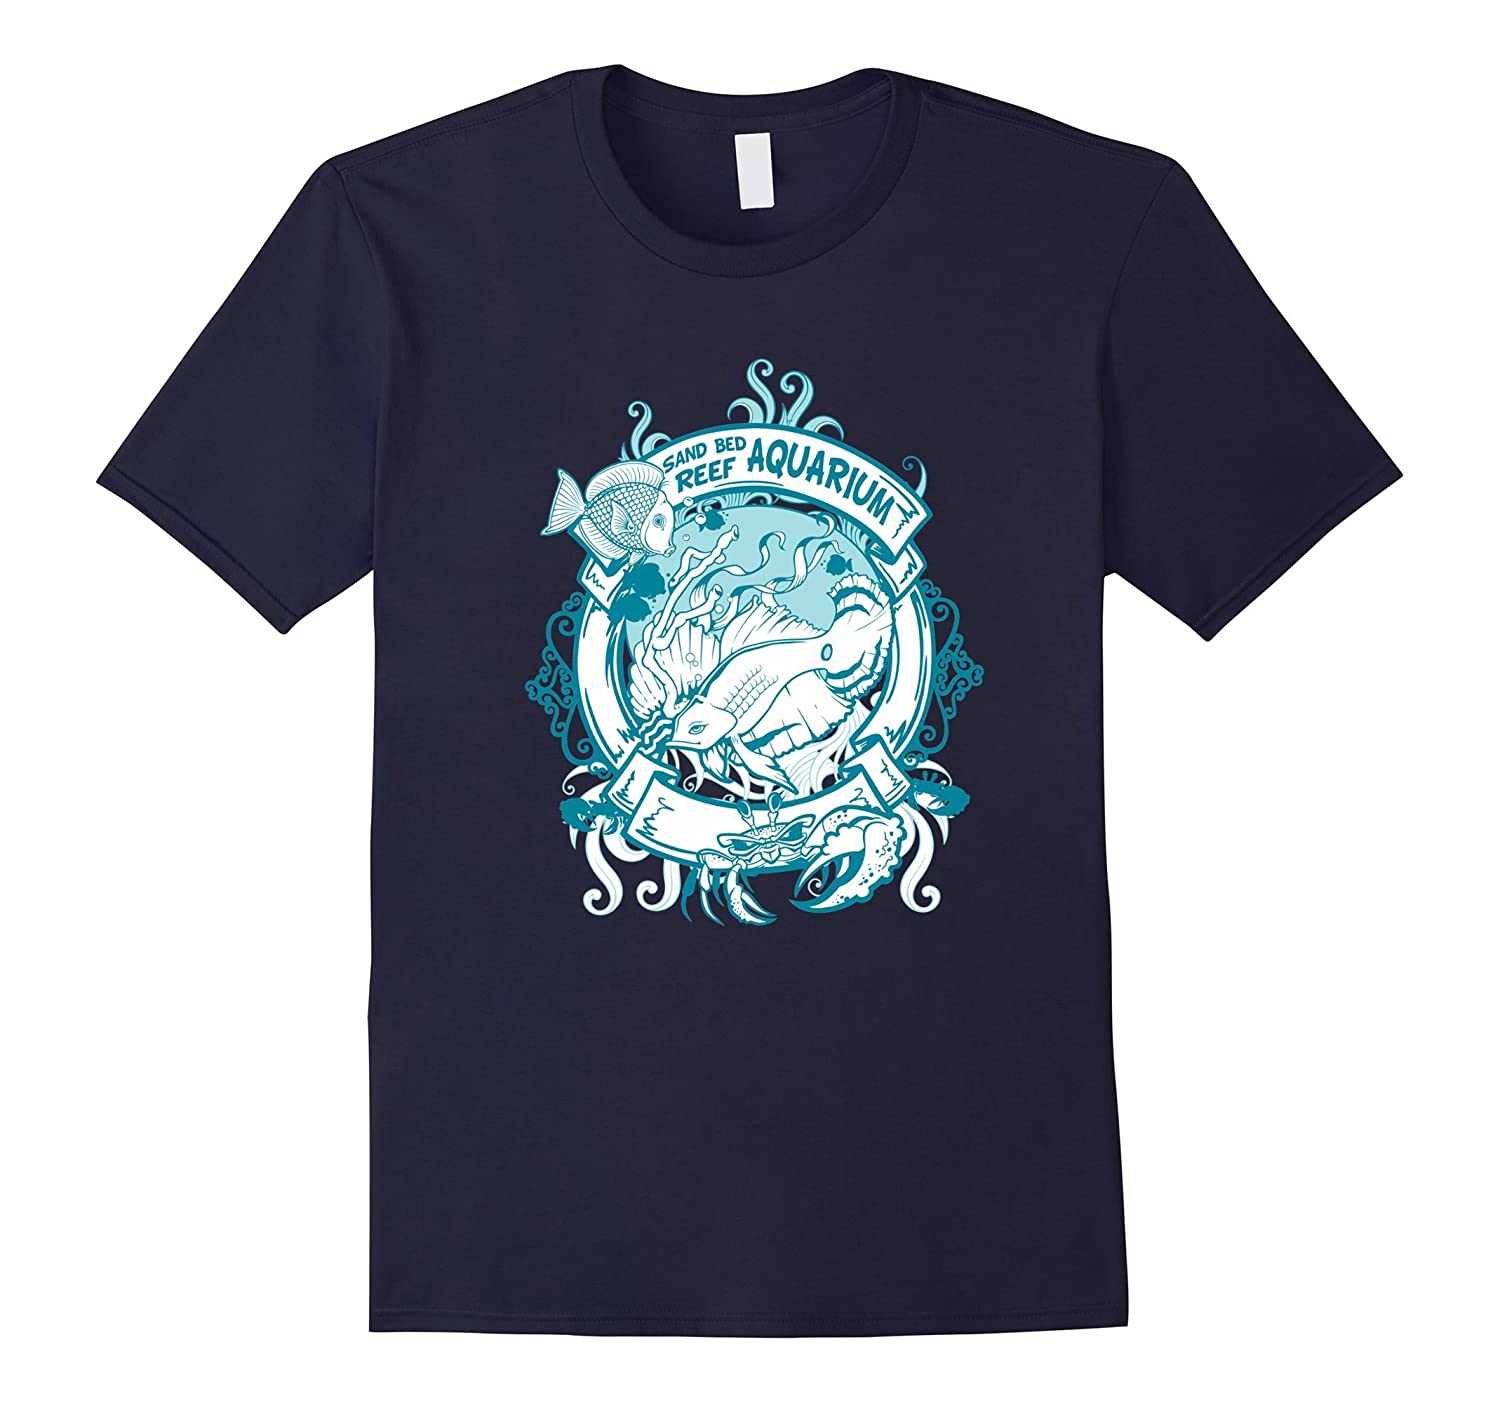 Sand Bed Aquarium Reef T Shirt For Women Graphic Tee For Men-Art